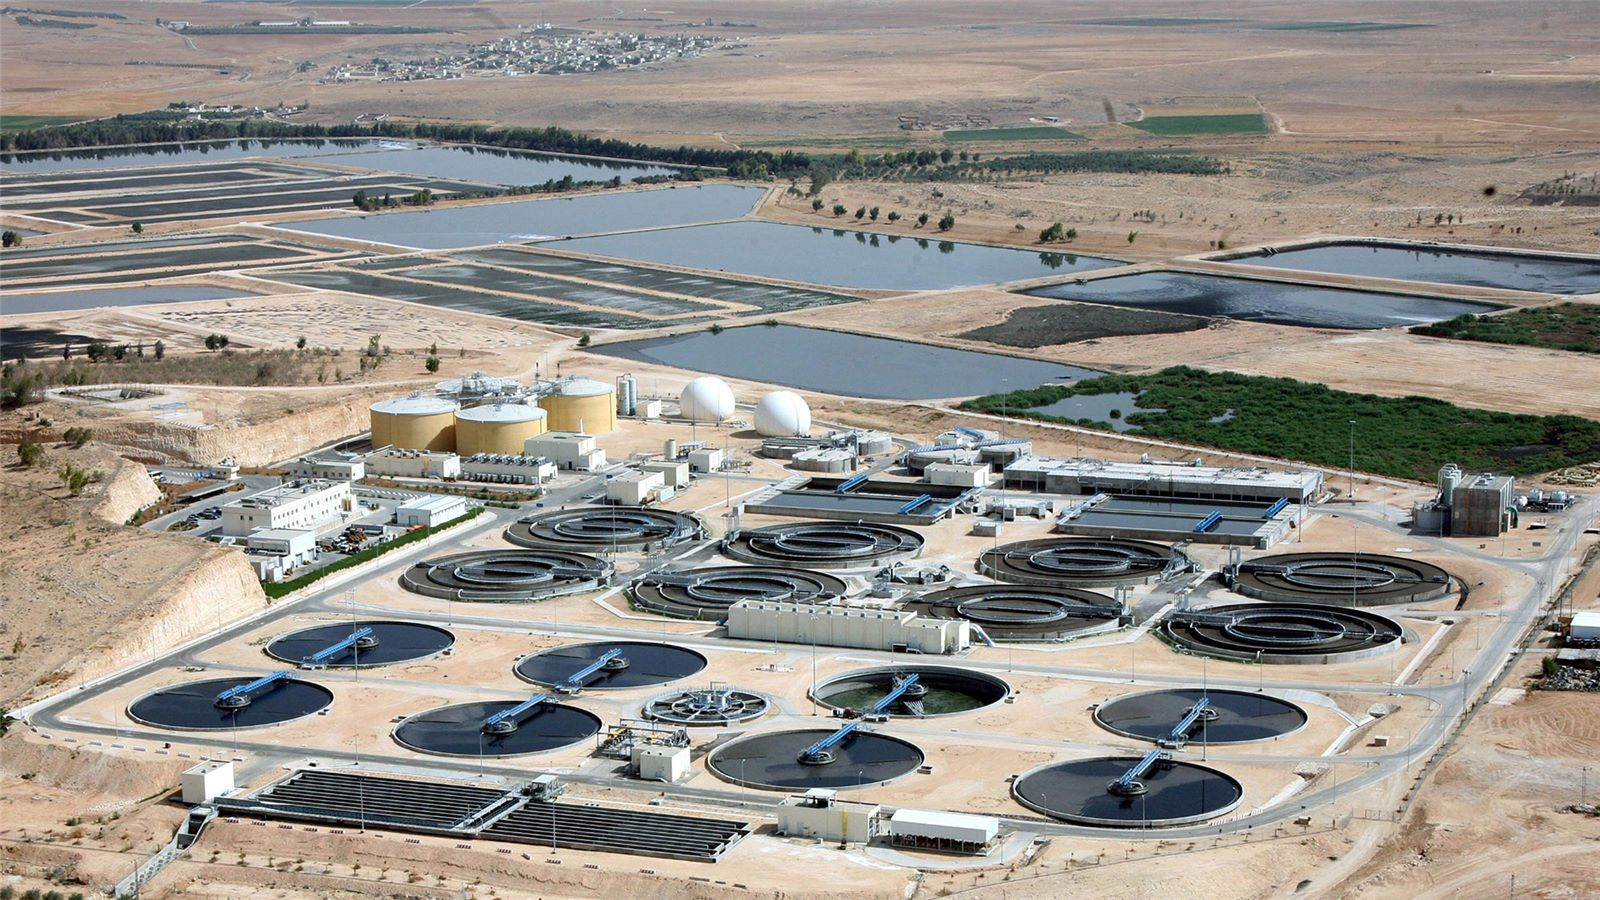 Water management - SUEZ Group